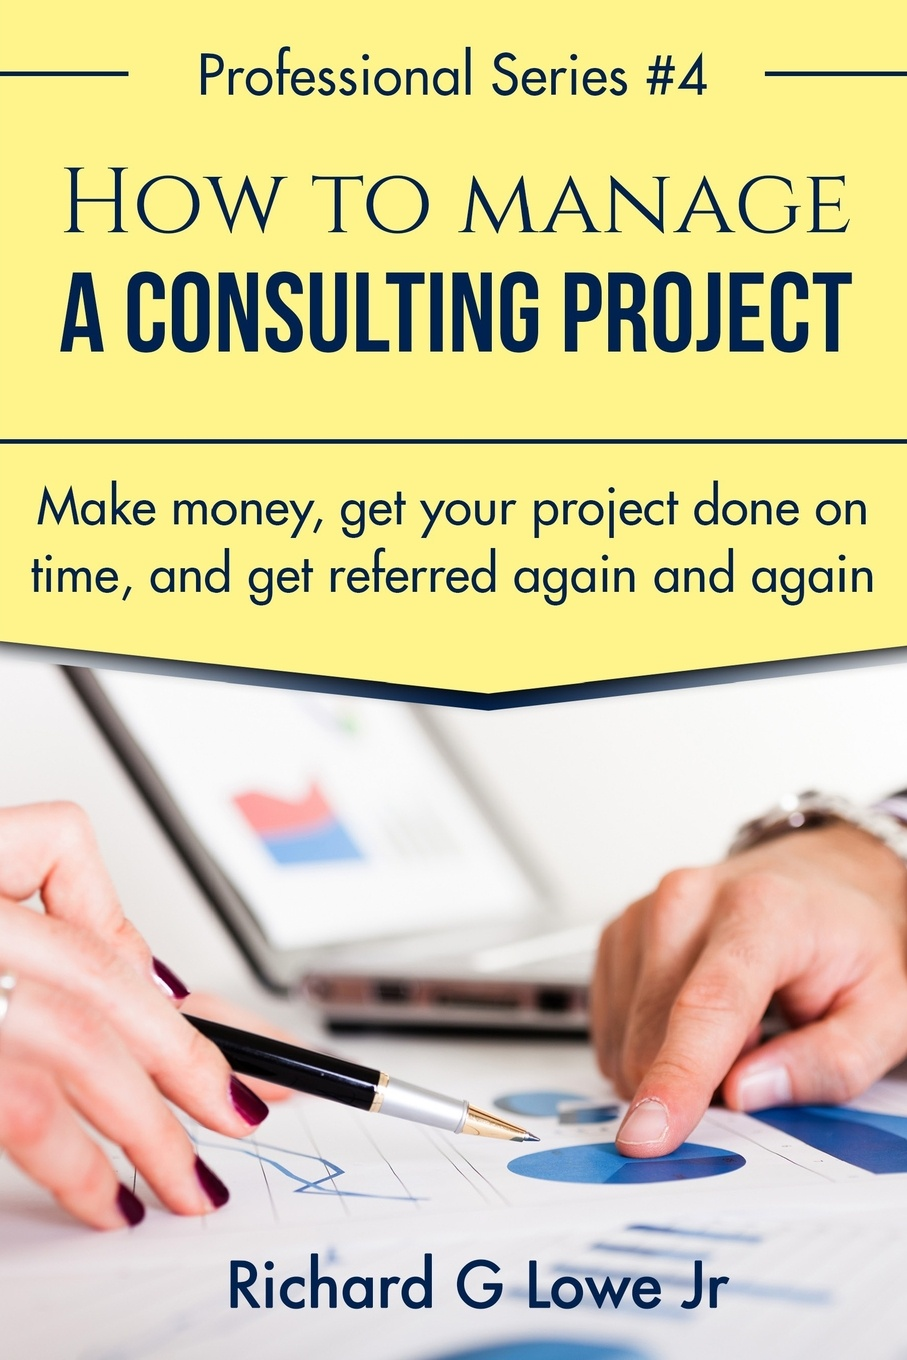 Richard G Lowe Jr How to Manage a Consulting Project. Make Money, Get Your Project Done on Time, and Get Referred Again and Again charles schwab jr make money work for you instead of you working for it lessons from a portfolio manager